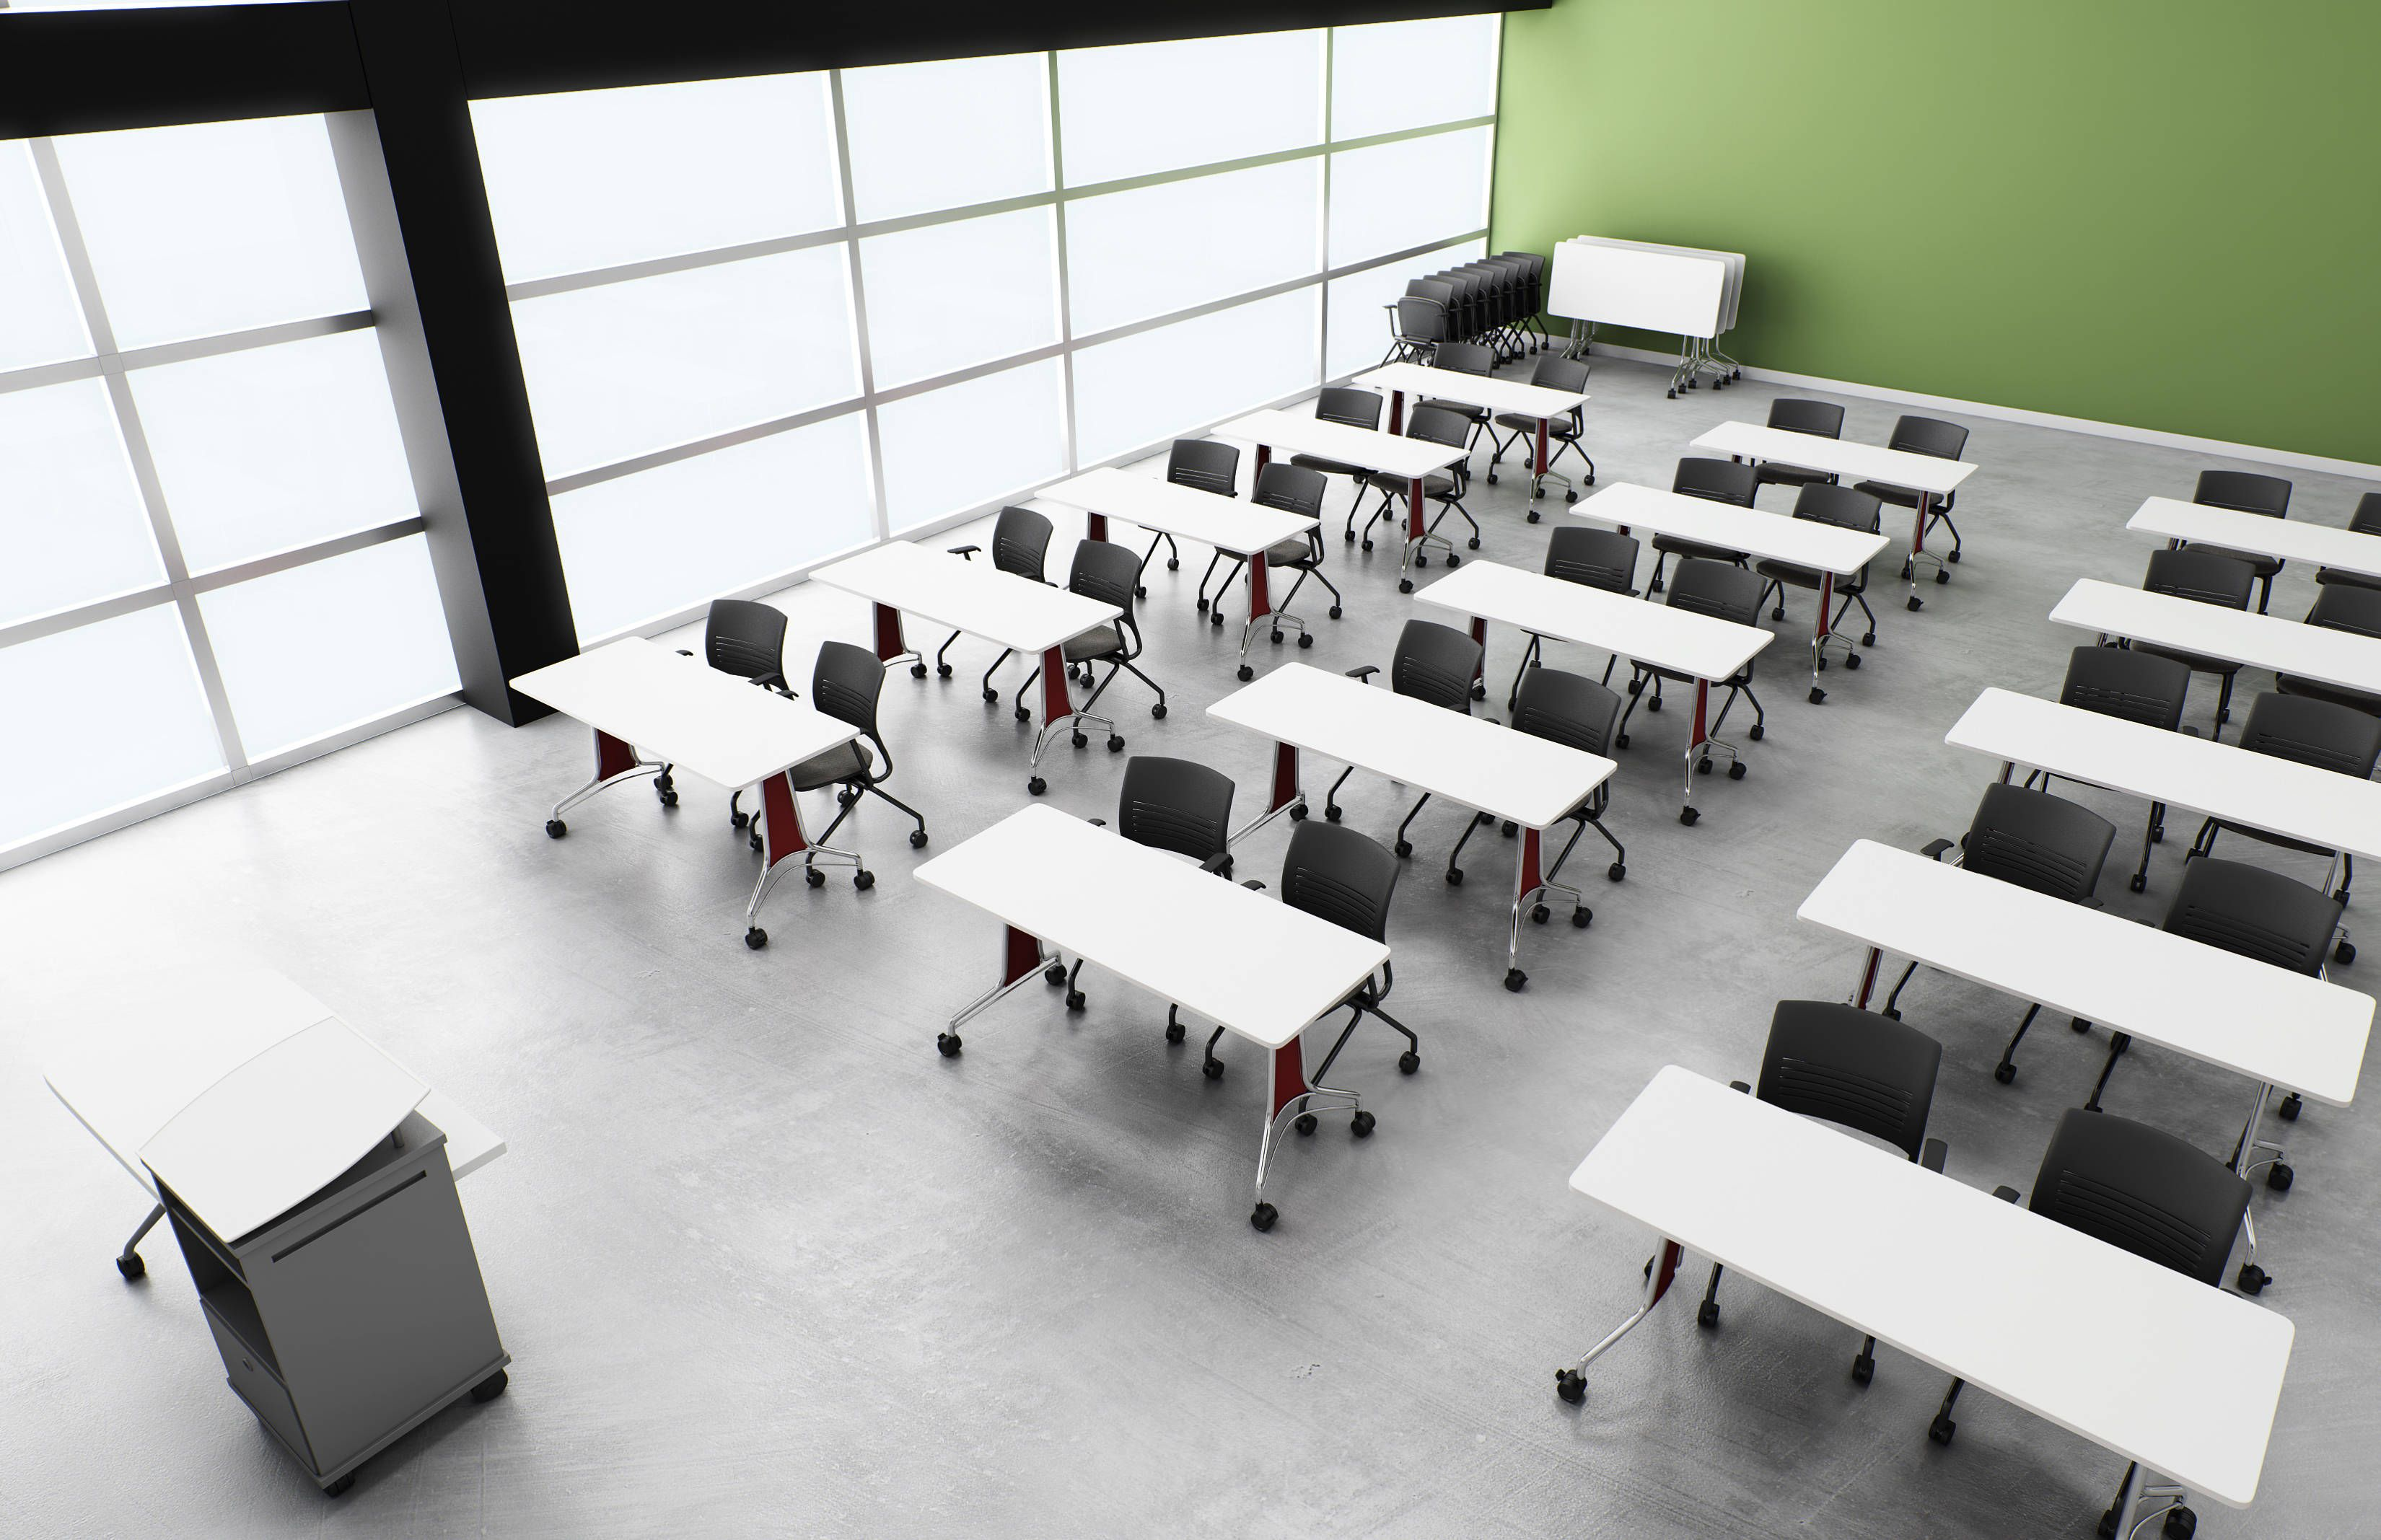 Ki 39 s enlite tables with strive seating where do you learn for Furniture design course